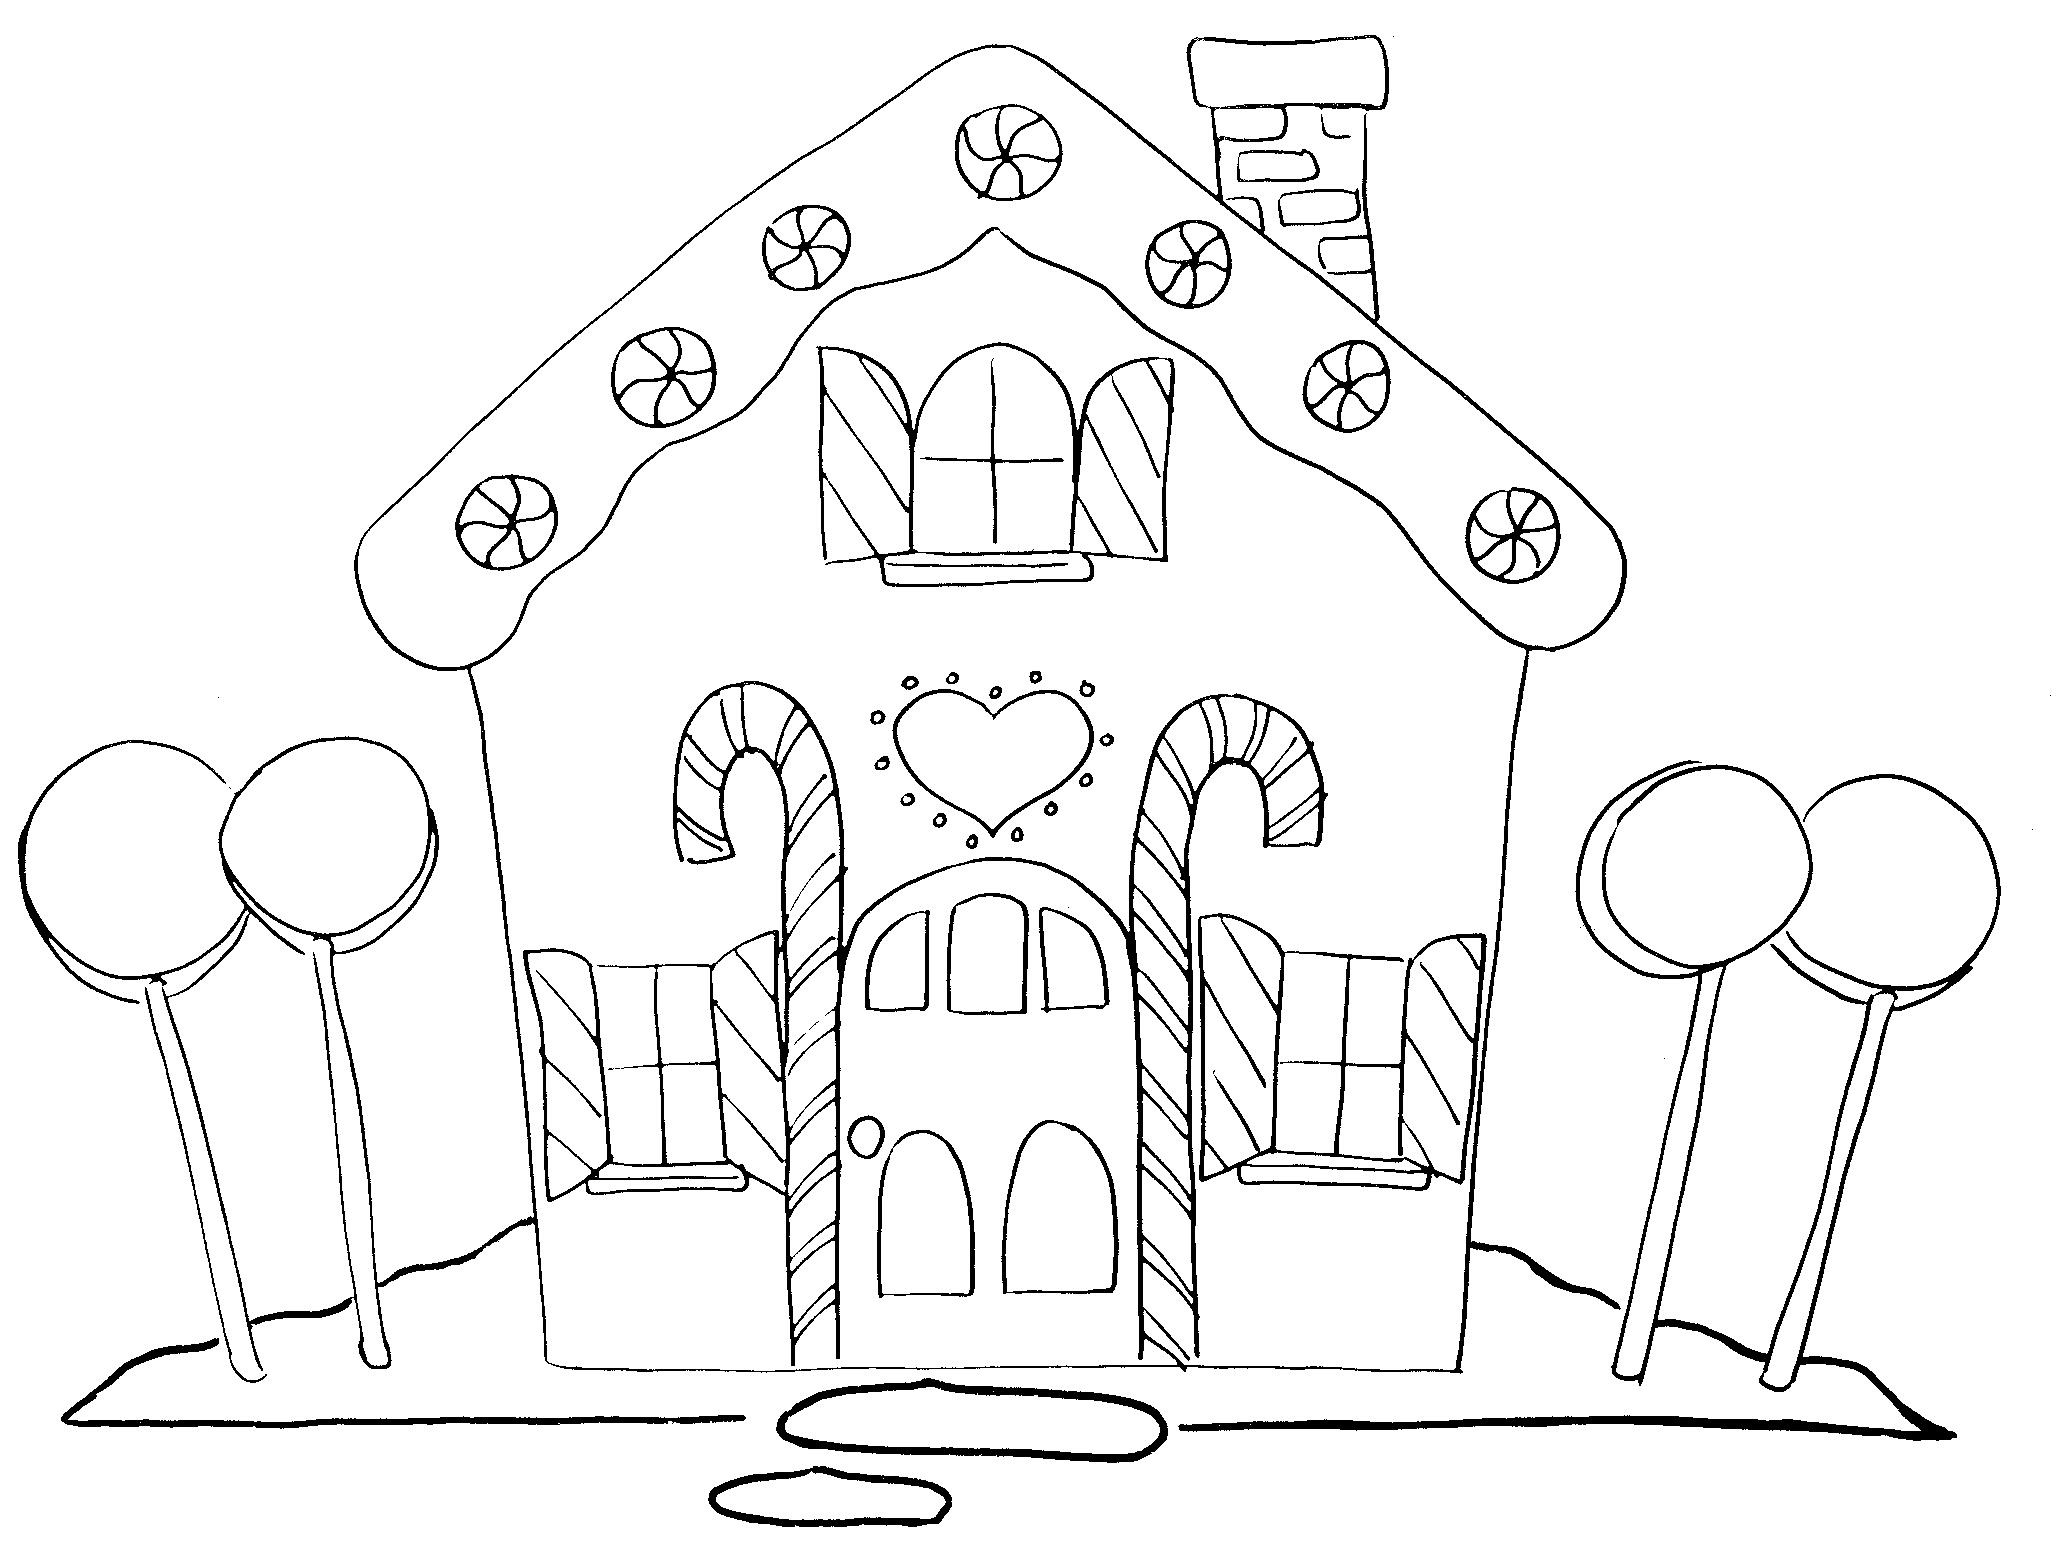 gingerbread house coloring sheet get this image of gingerbread house coloring pages to sheet gingerbread house coloring